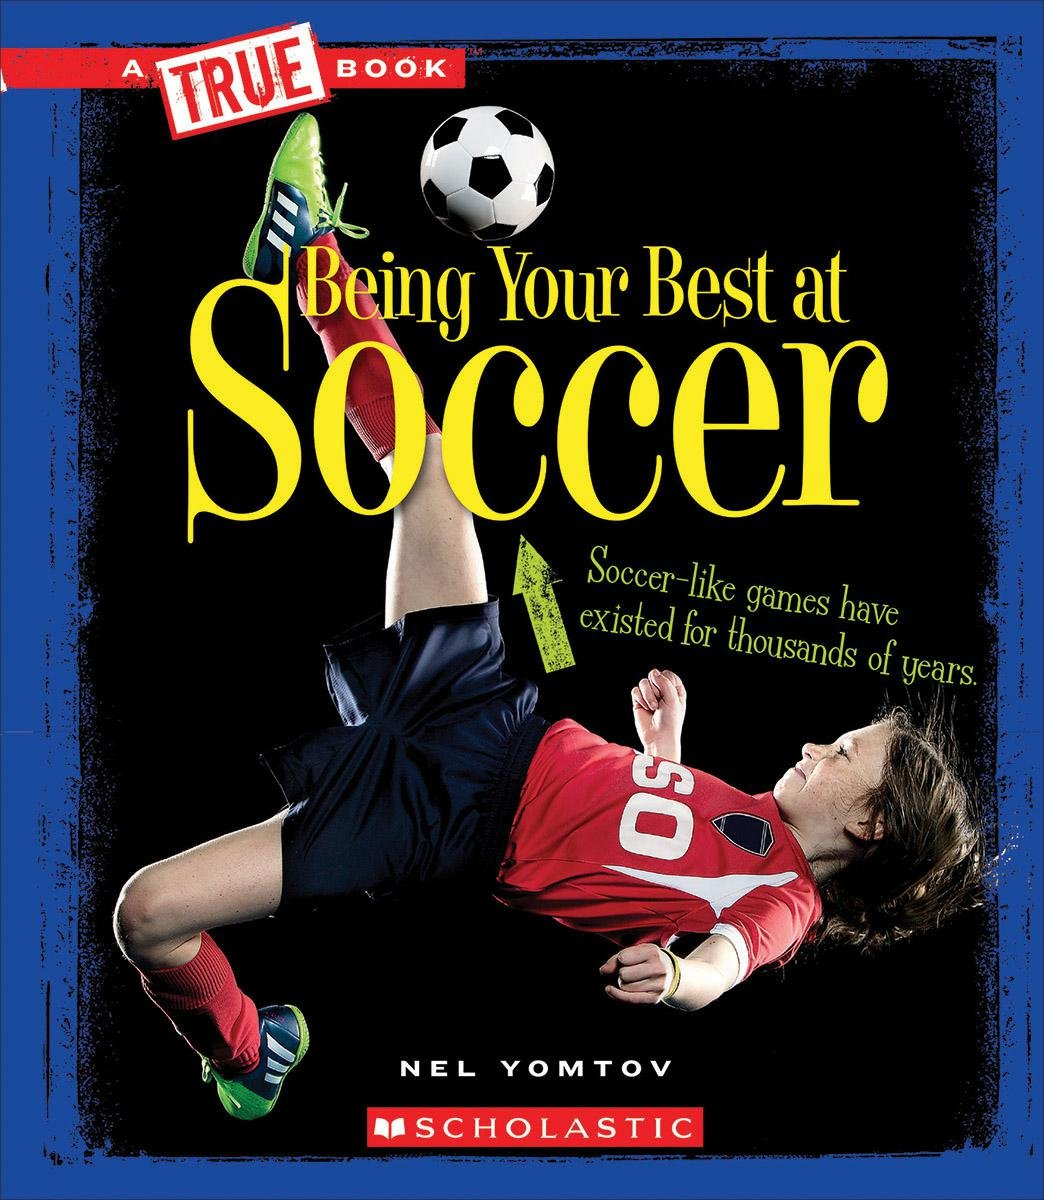 Being Your Best at Soccer (True Book) ebook